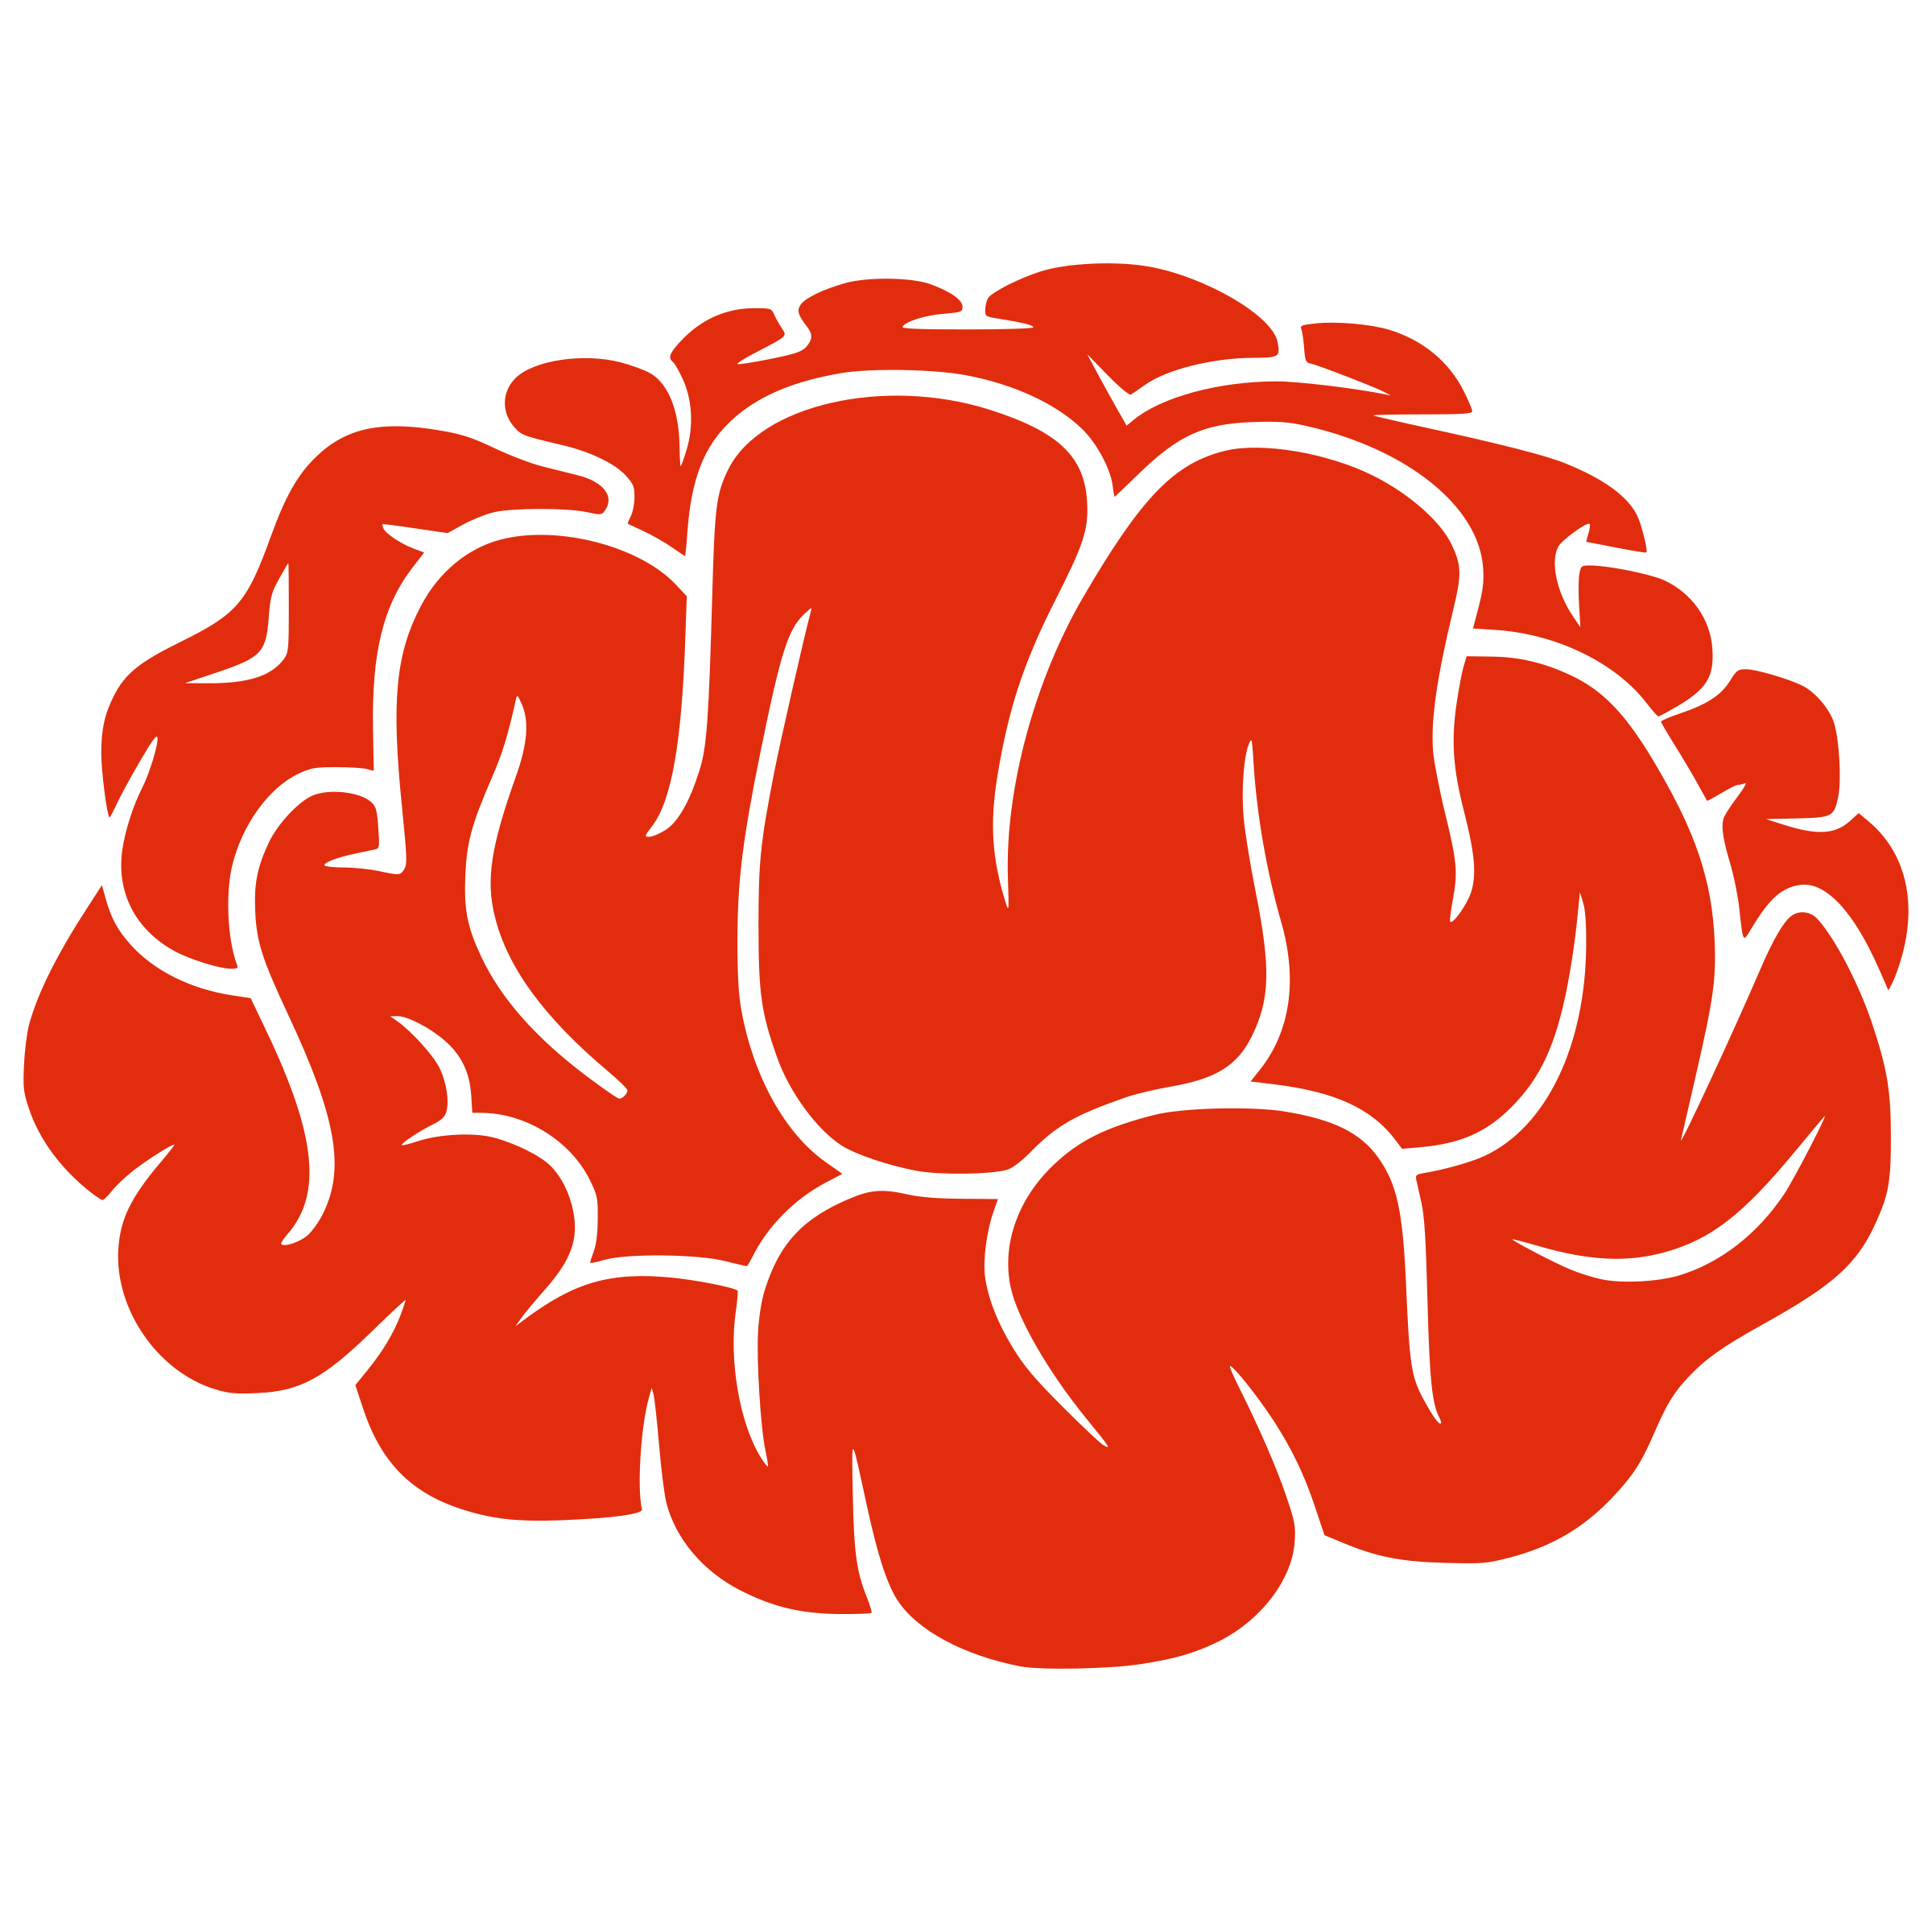 Red Brain image #2540 - Brain PNG